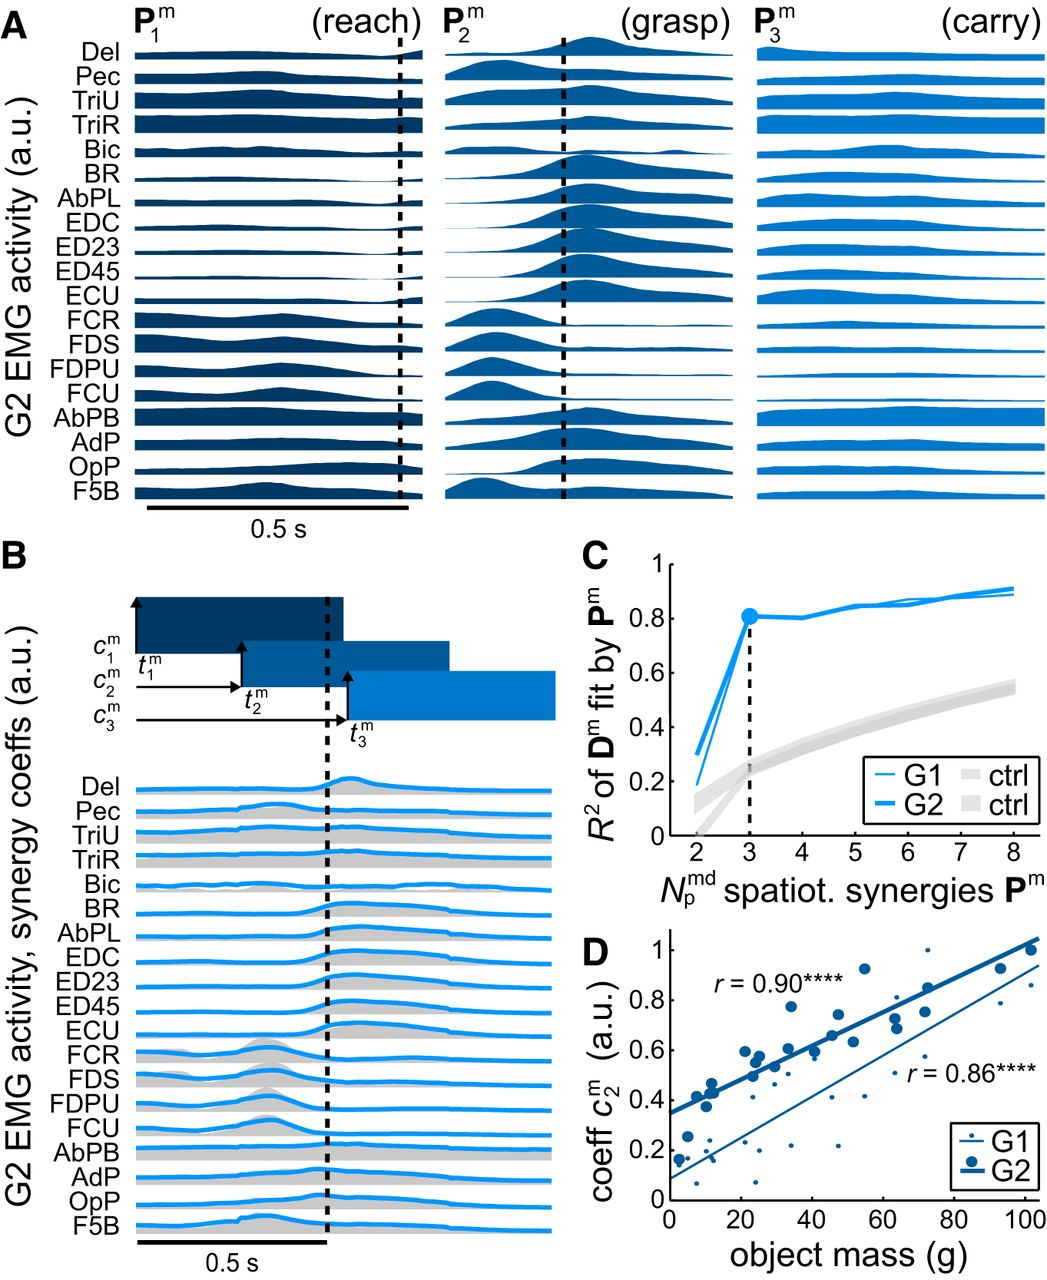 Representation of Muscle Synergies in the Primate Brain